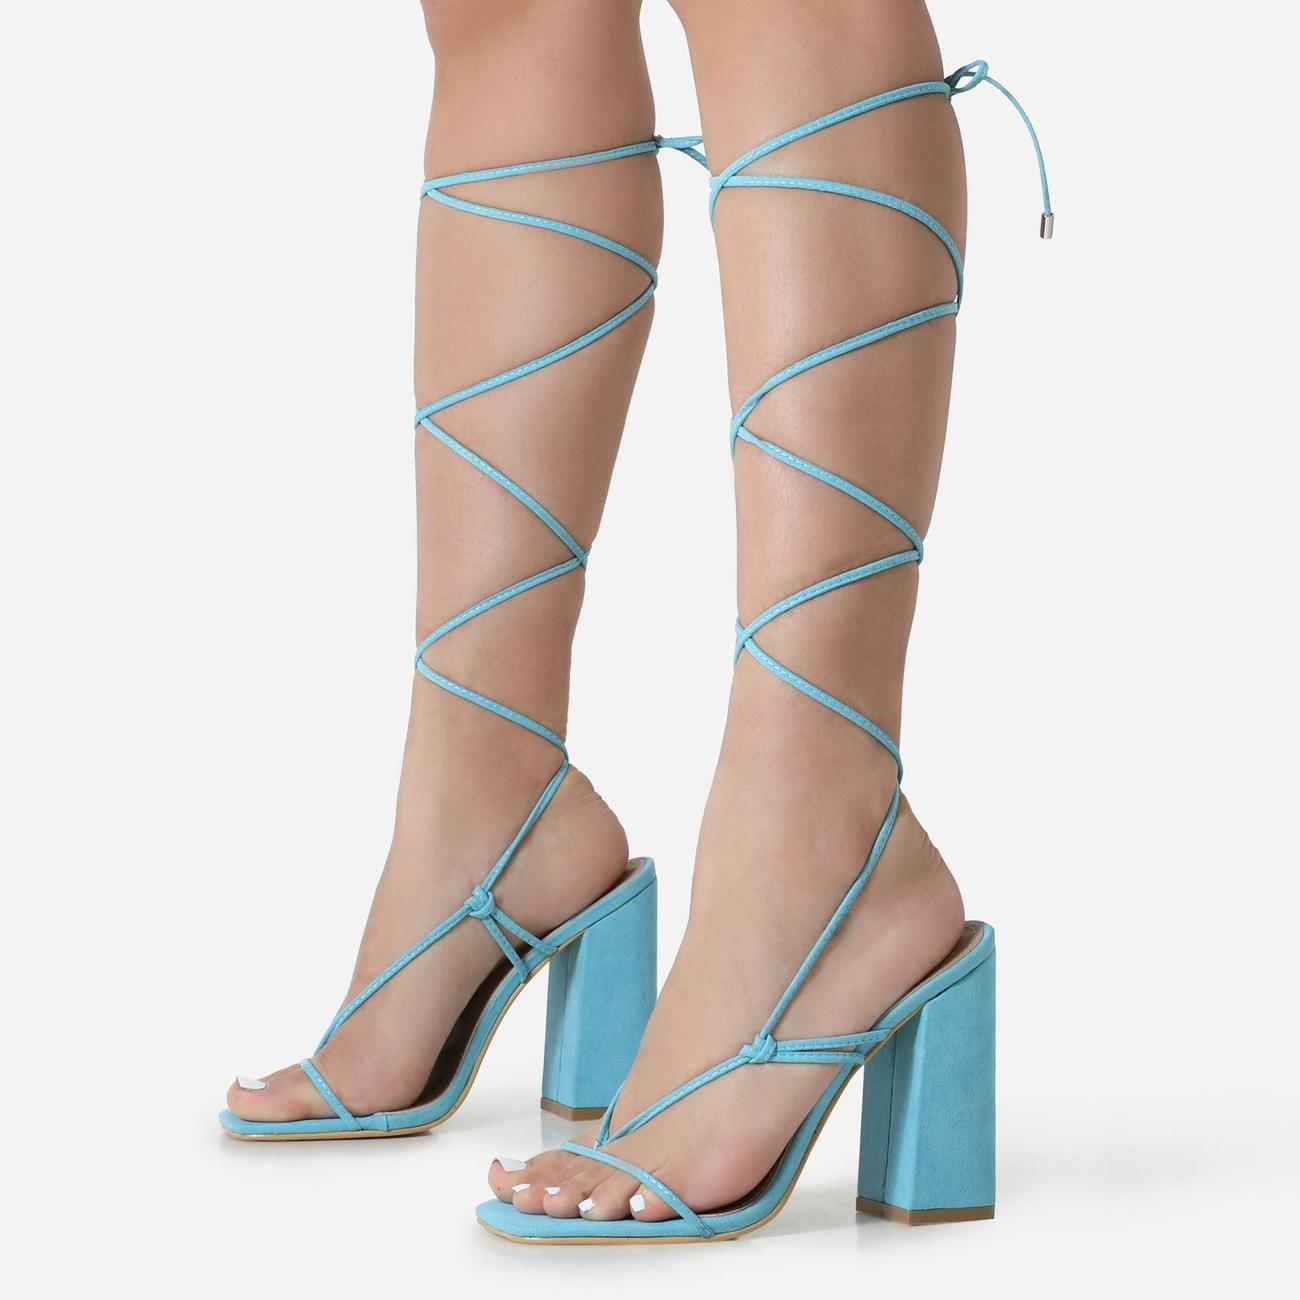 Honey Square Toe Lace Up Block Heel In Blue Faux Suede Image 2